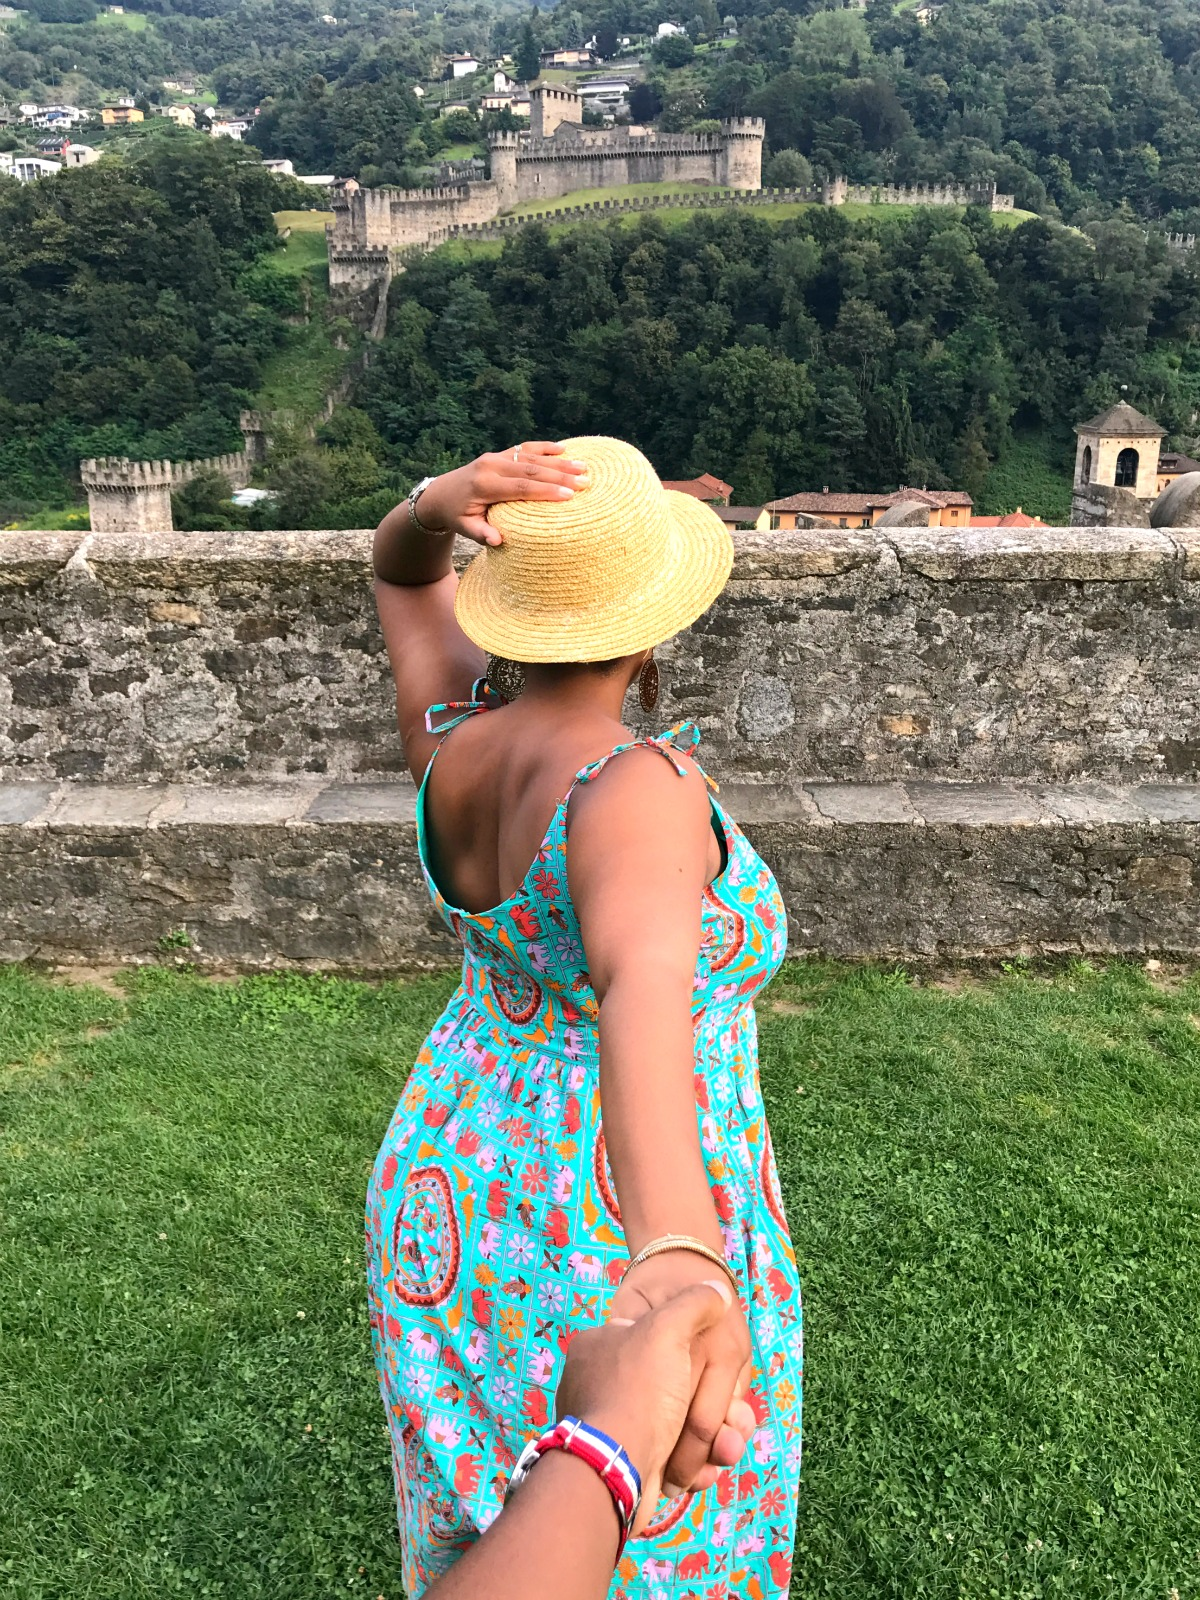 Switzerland Road Trip - Castlegrande in Bellinzona